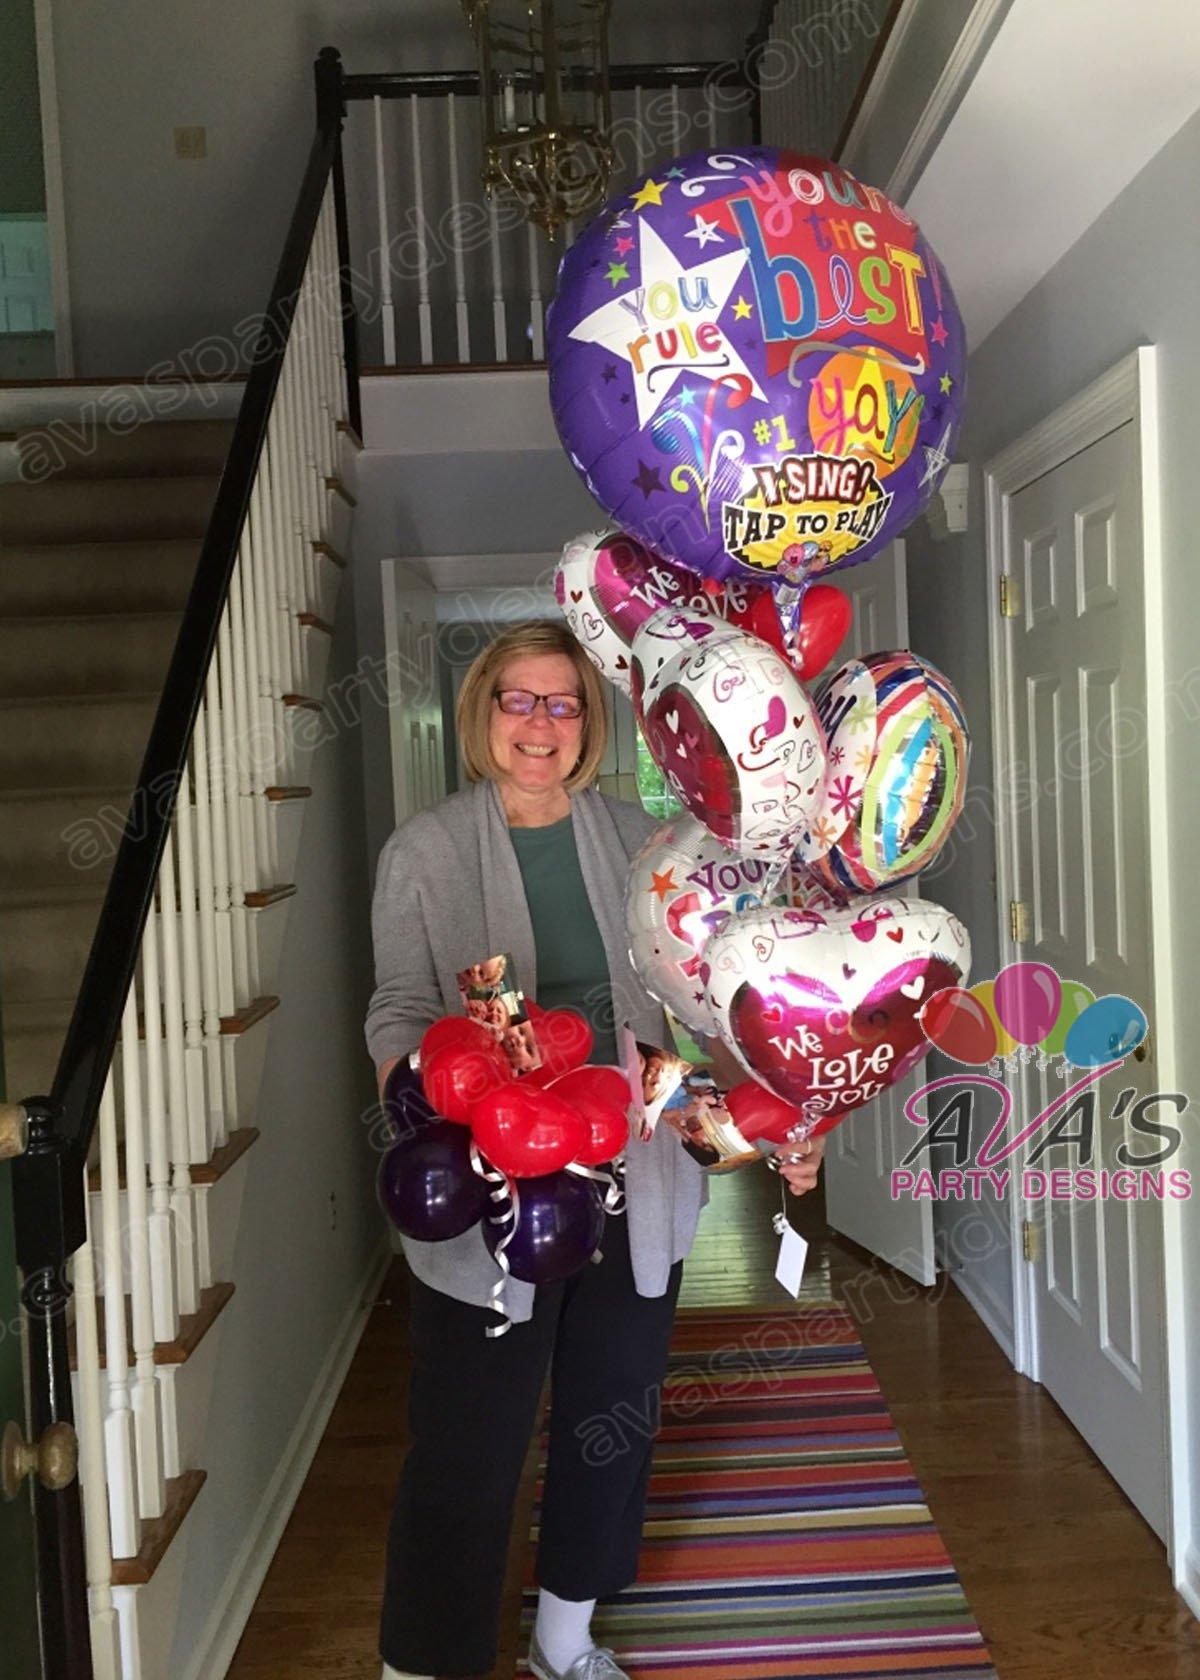 balloon delivery in Connecticut, balloon delivery for birthdays, gift ideas for birthdays